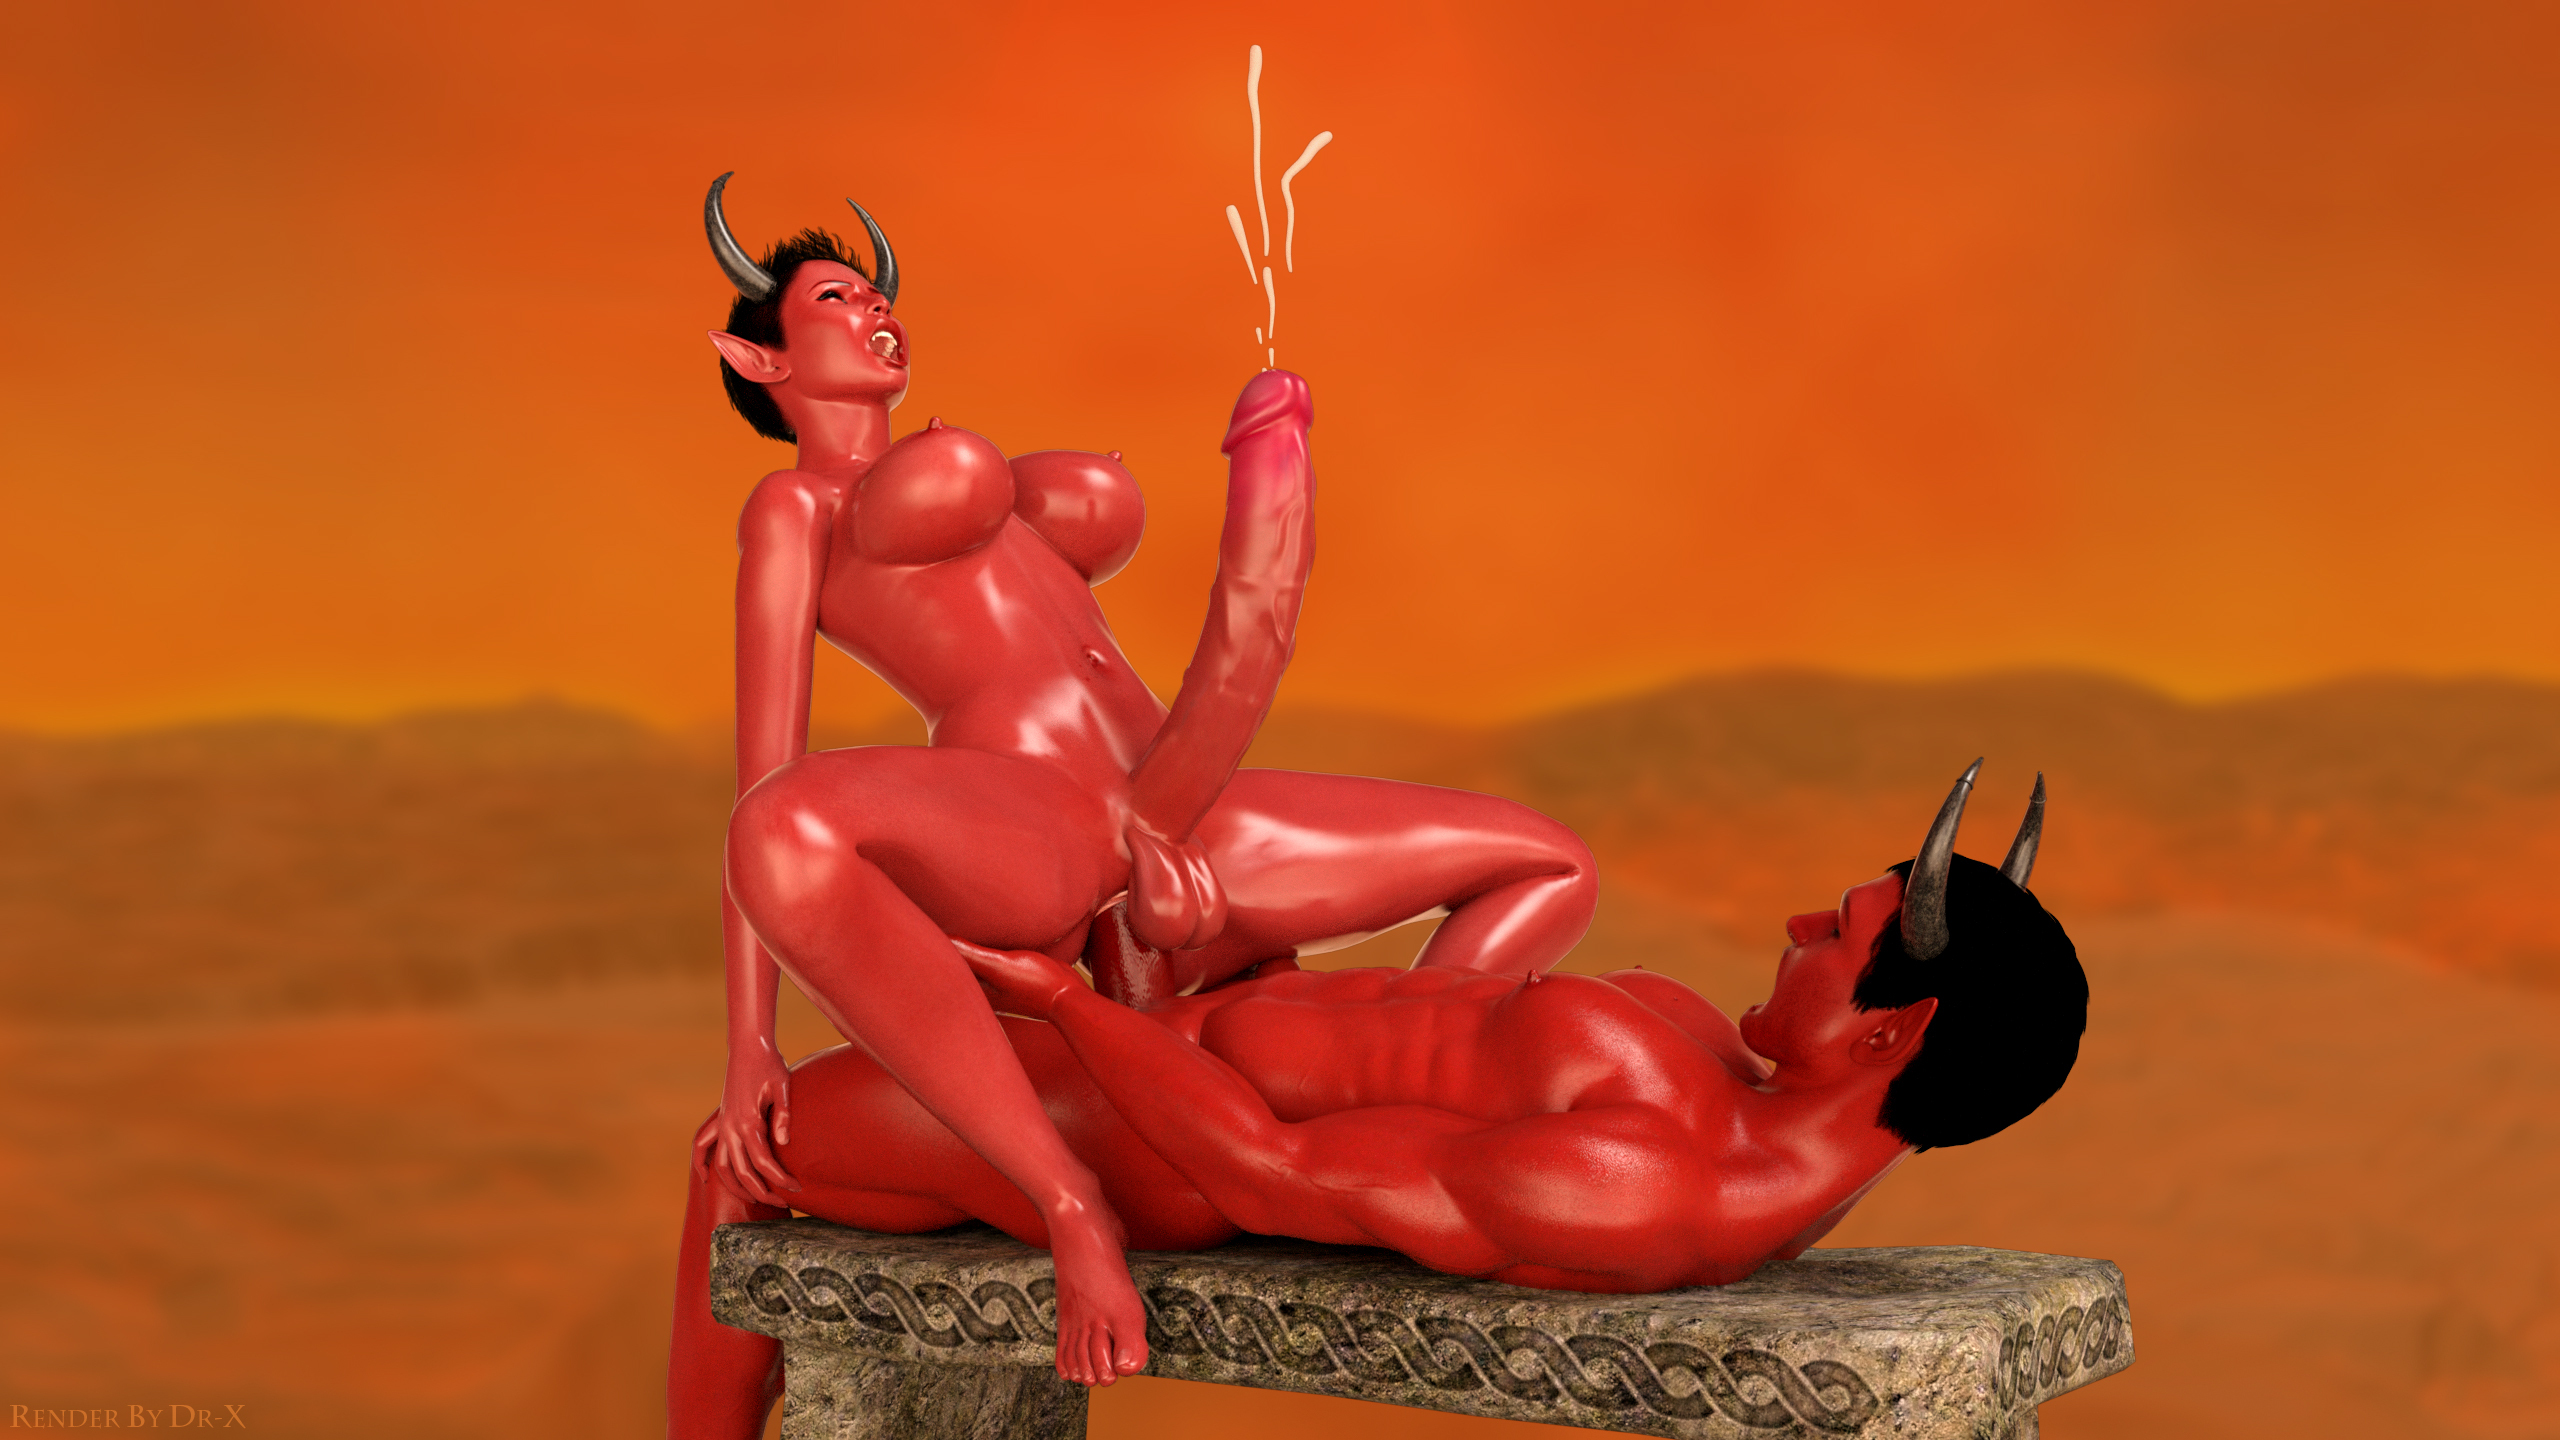 Putting the D in Demonic